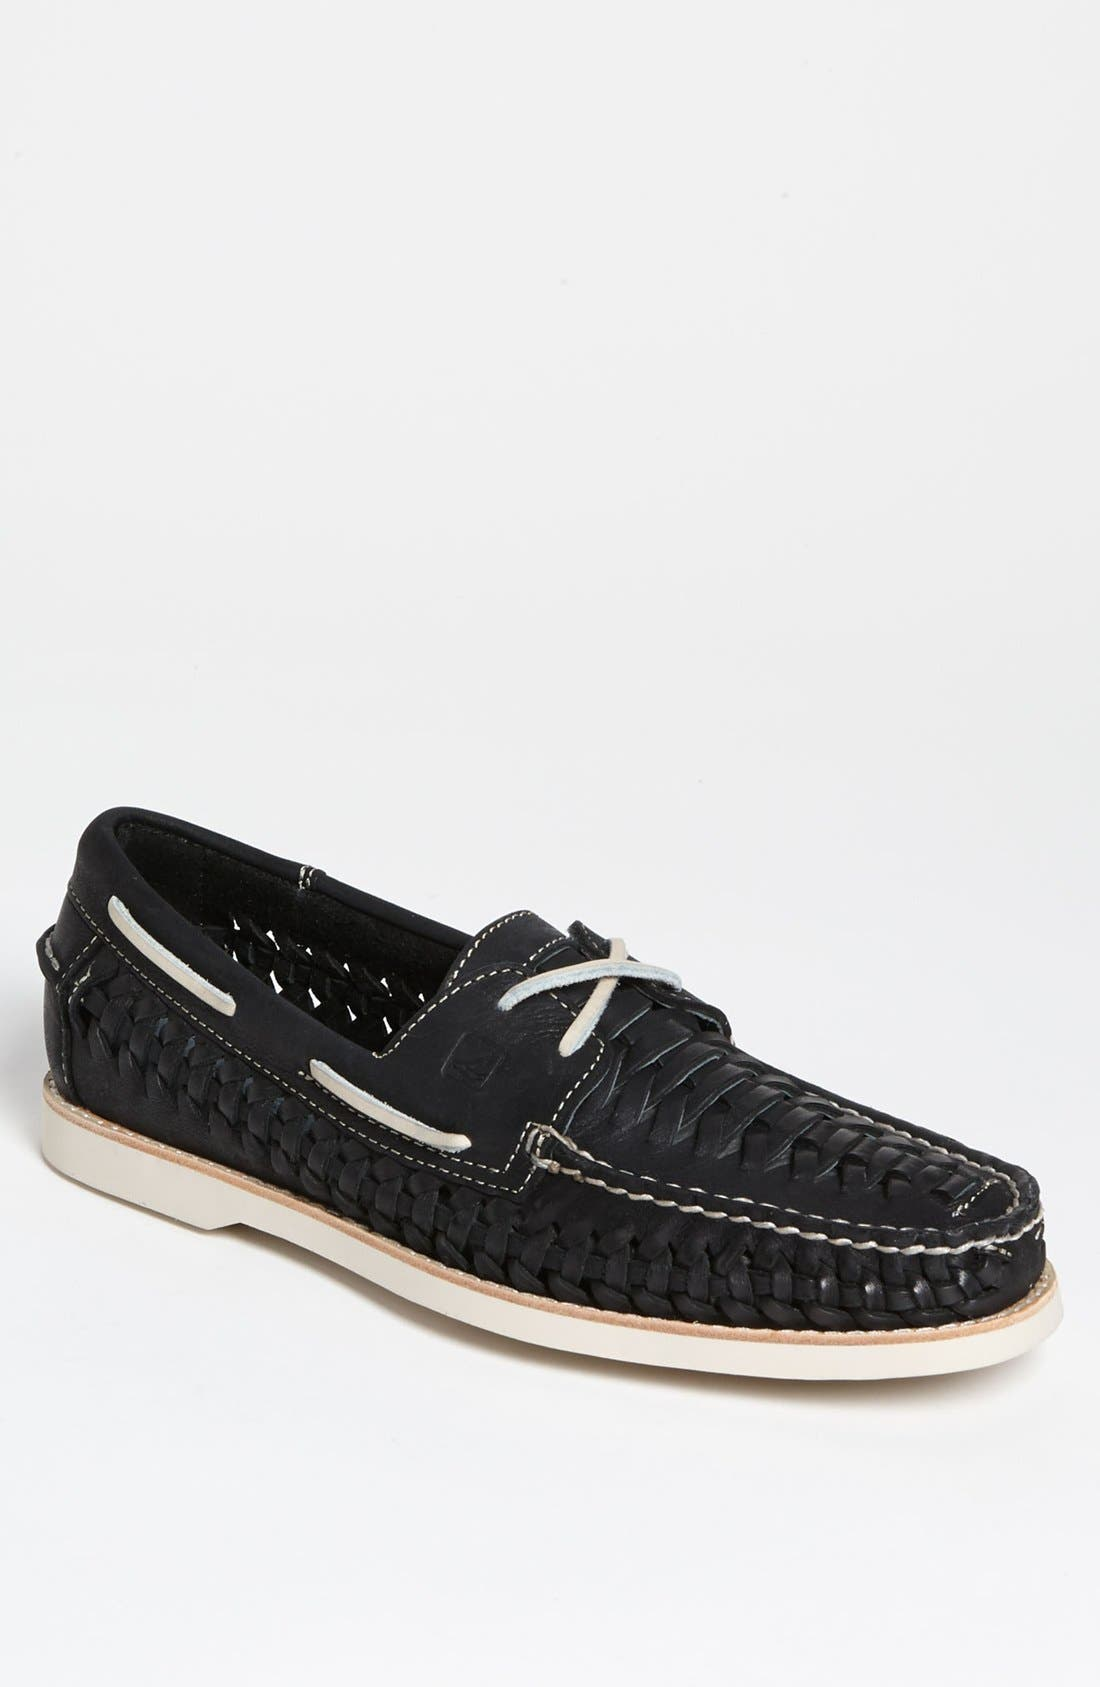 Alternate Image 1 Selected - Sperry Top-Sider® 'Seaside' Woven Boat Shoe (Men)